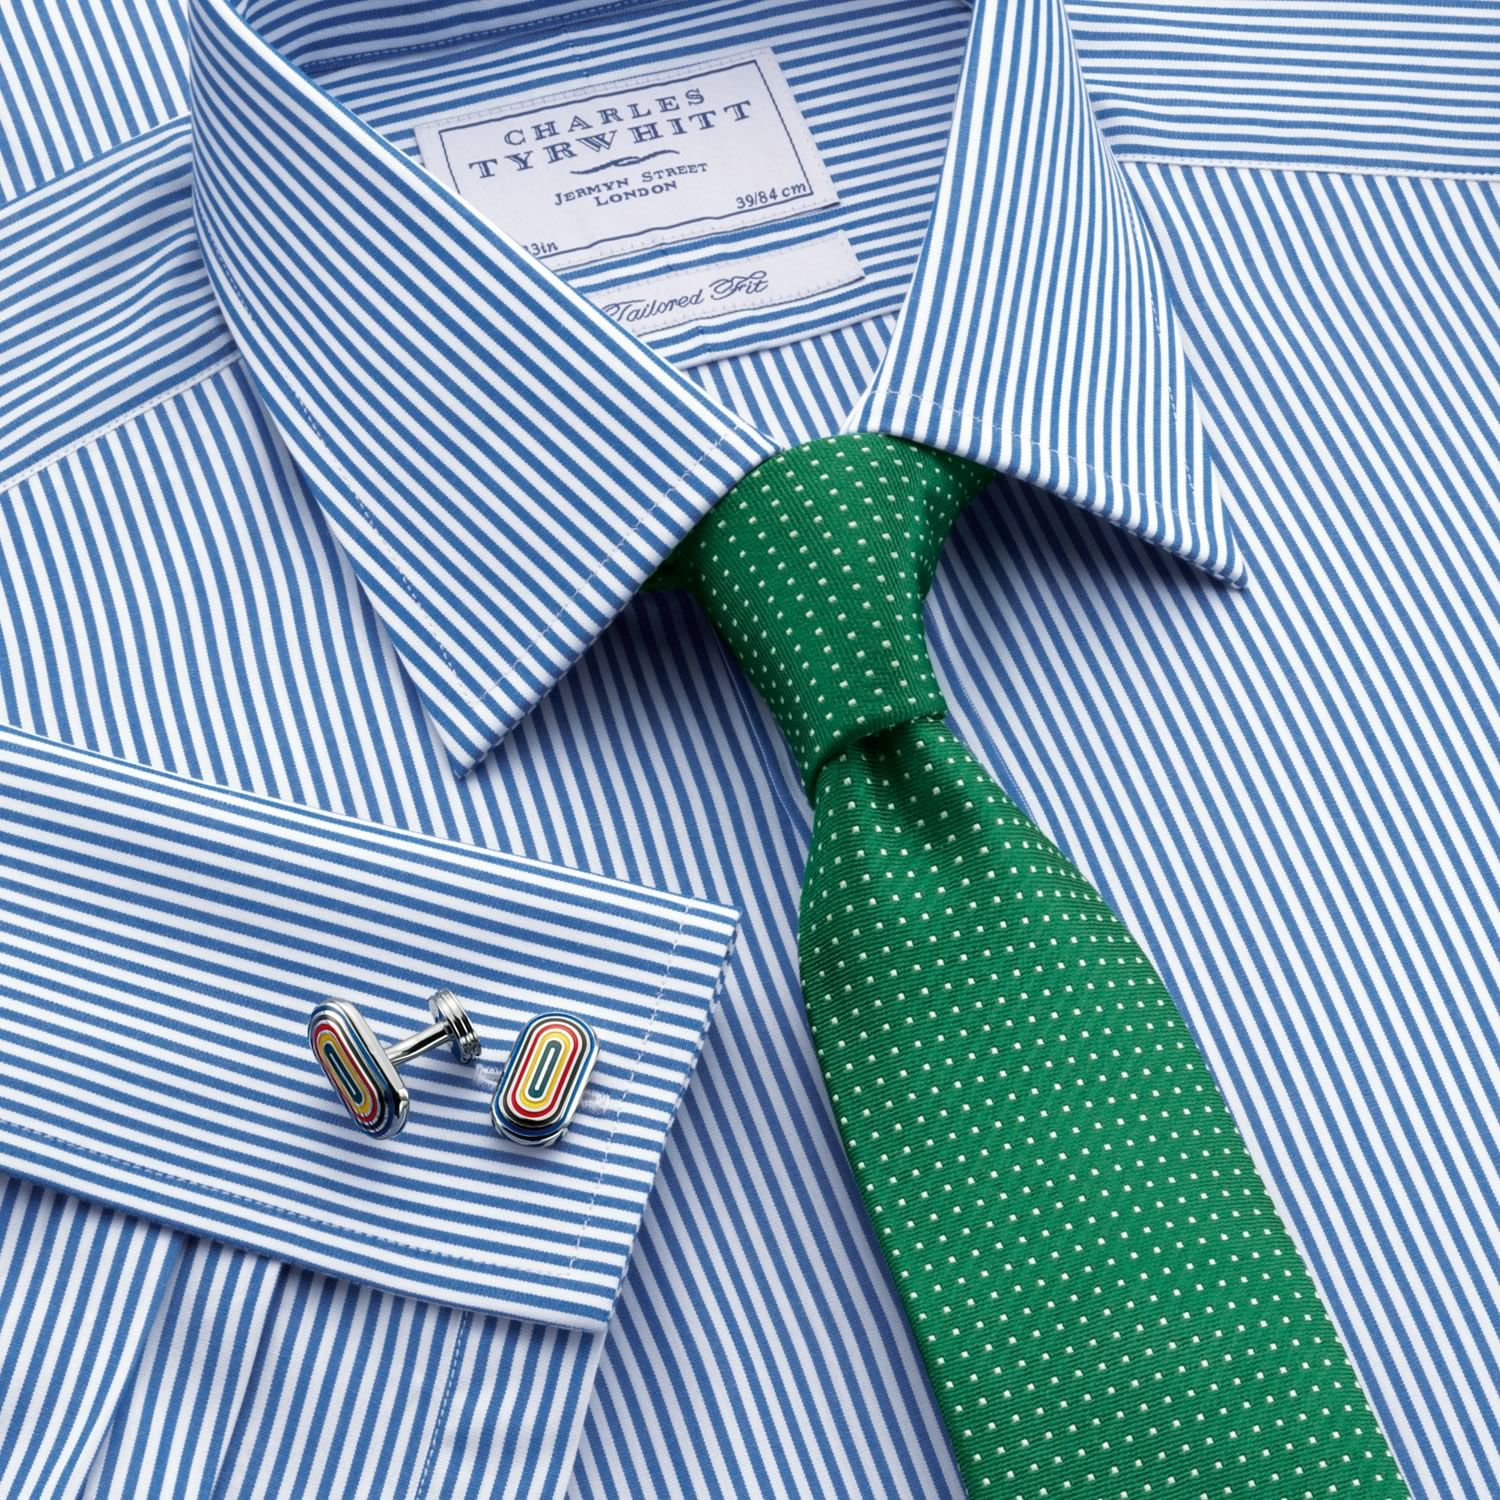 Great shirt and tie combo blue bengal stripe tailored fit Blue suit shirt tie combinations